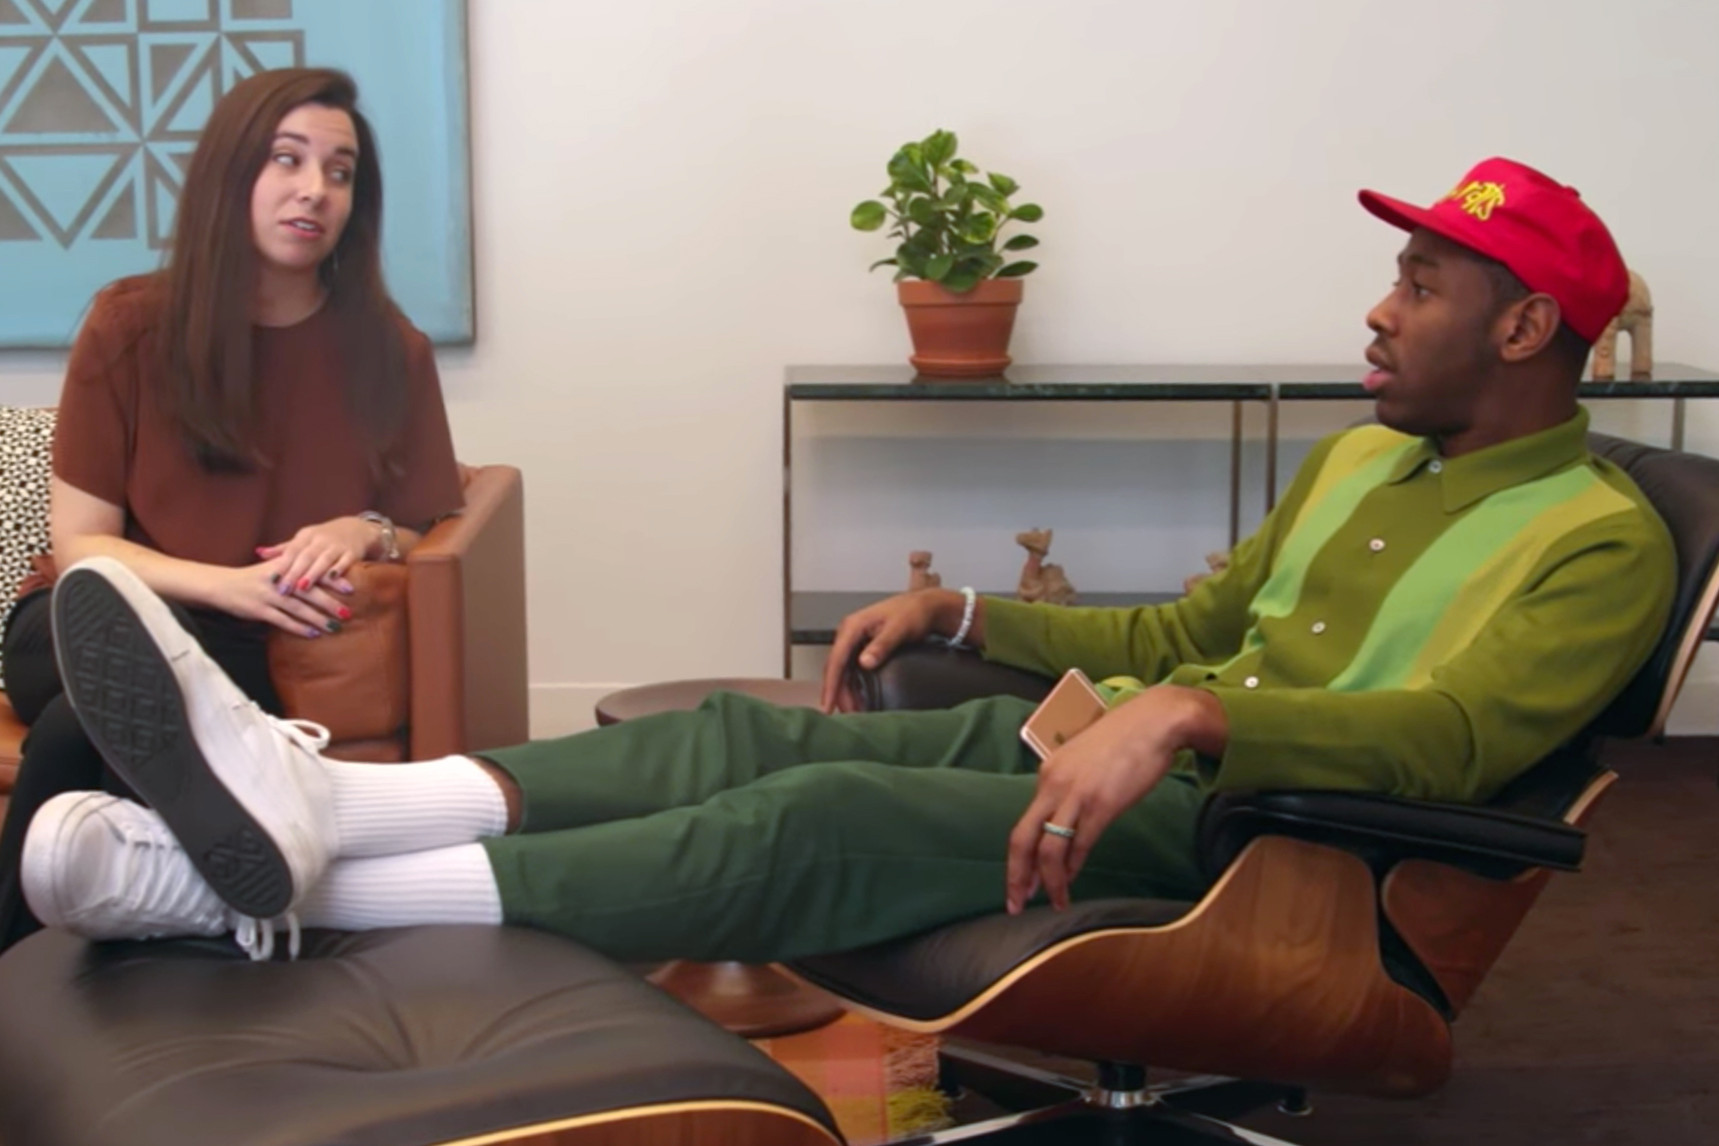 Watch Tyler, The Creator Design His Own $4,500 USD Eames Chair